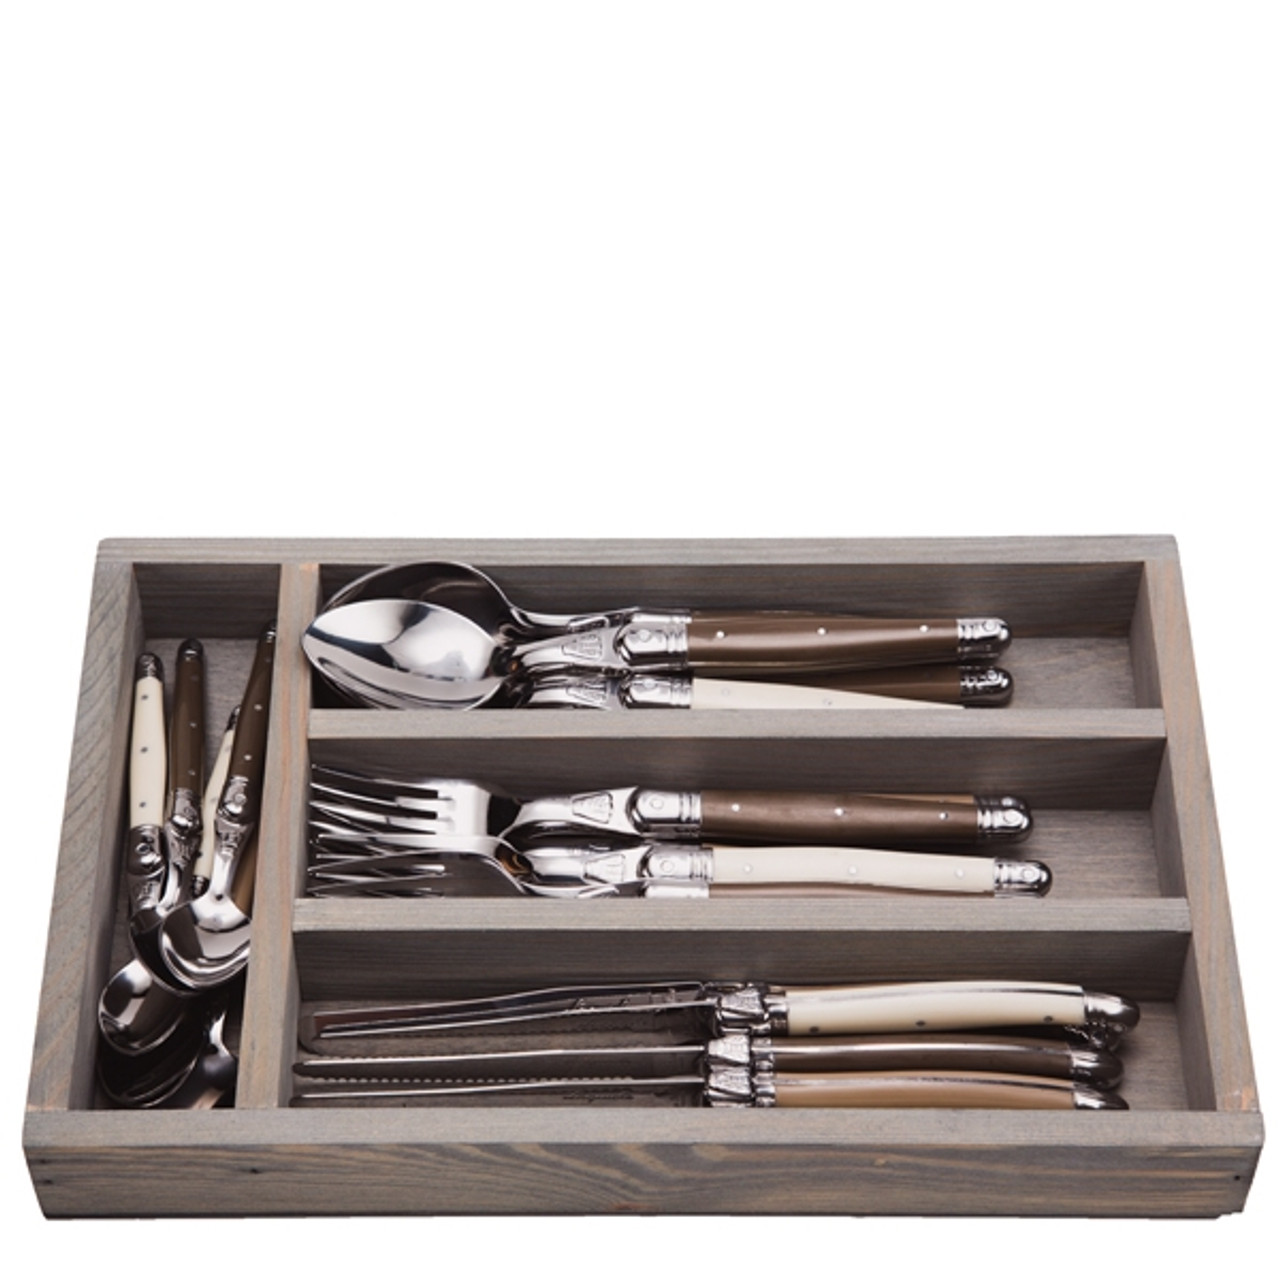 Jean Dubost Laguiole JD07-13152.BLK 24 Piece Everyday Flatware Set With Handles In a Tray Black